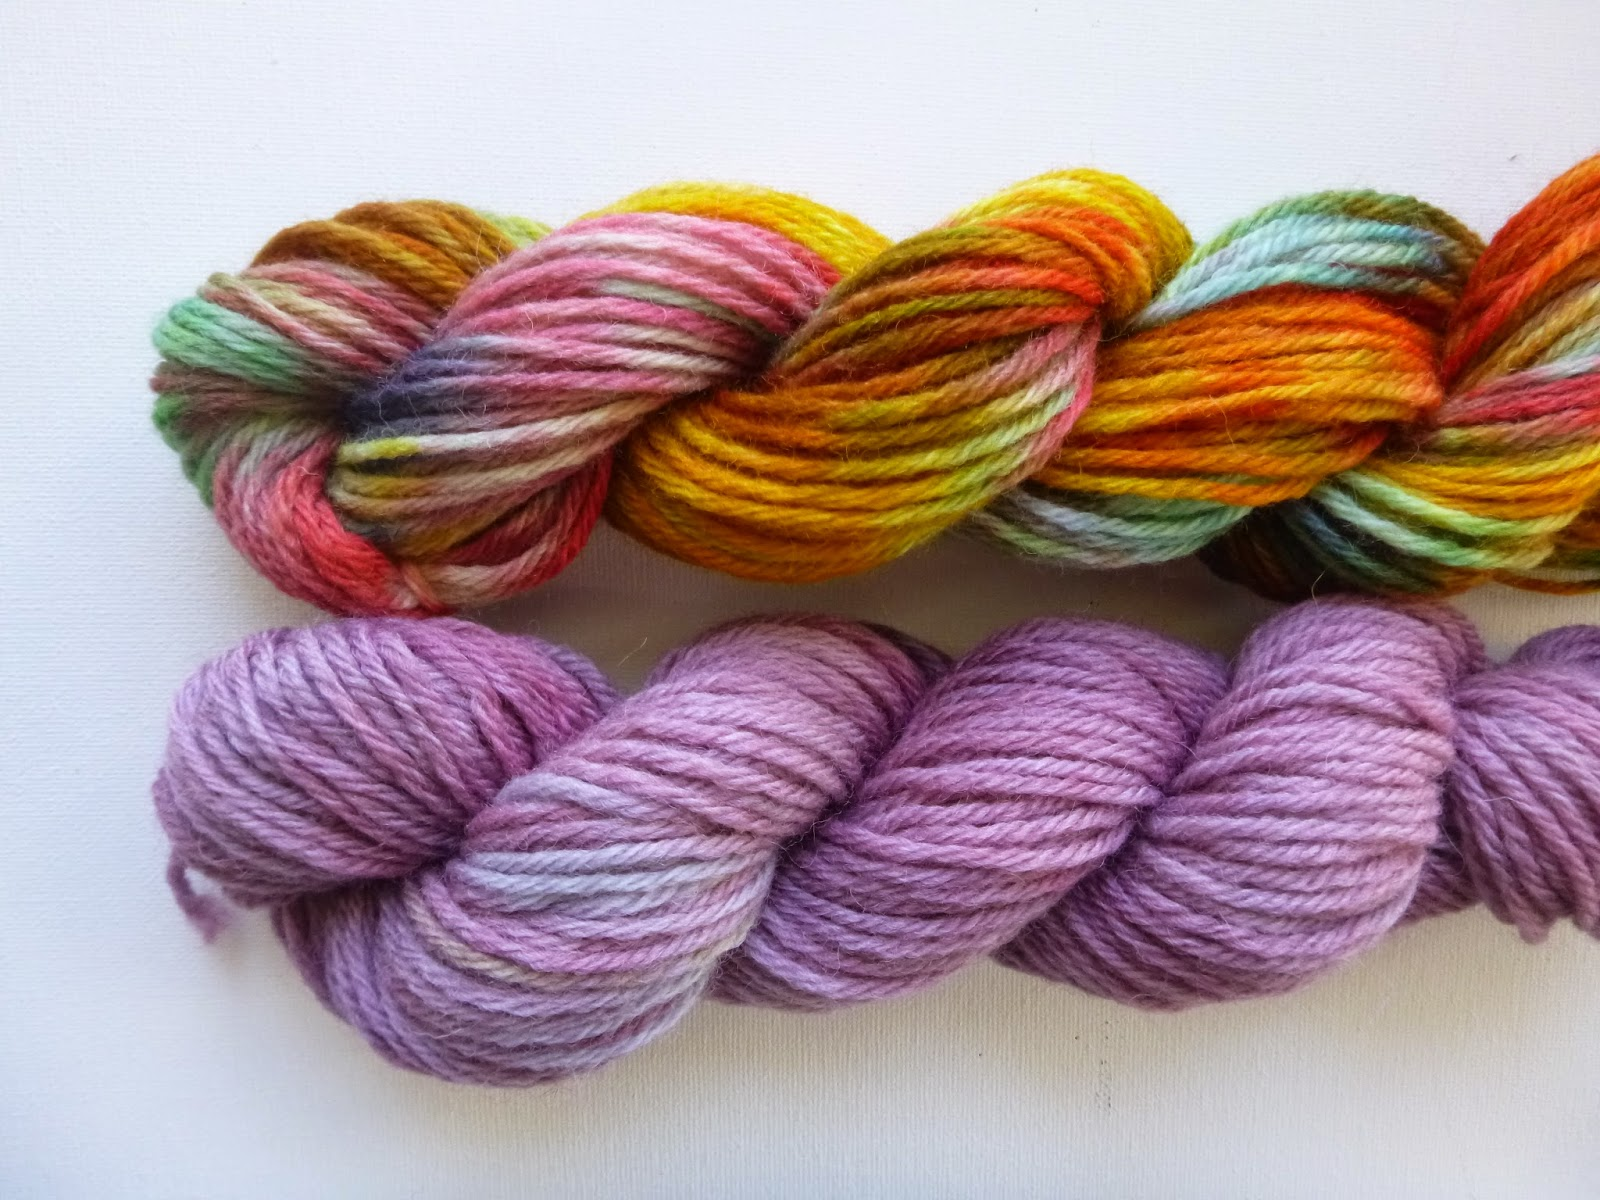 The Nome Knitter: Dyeing Yarn with Food Color and Kool-Aid